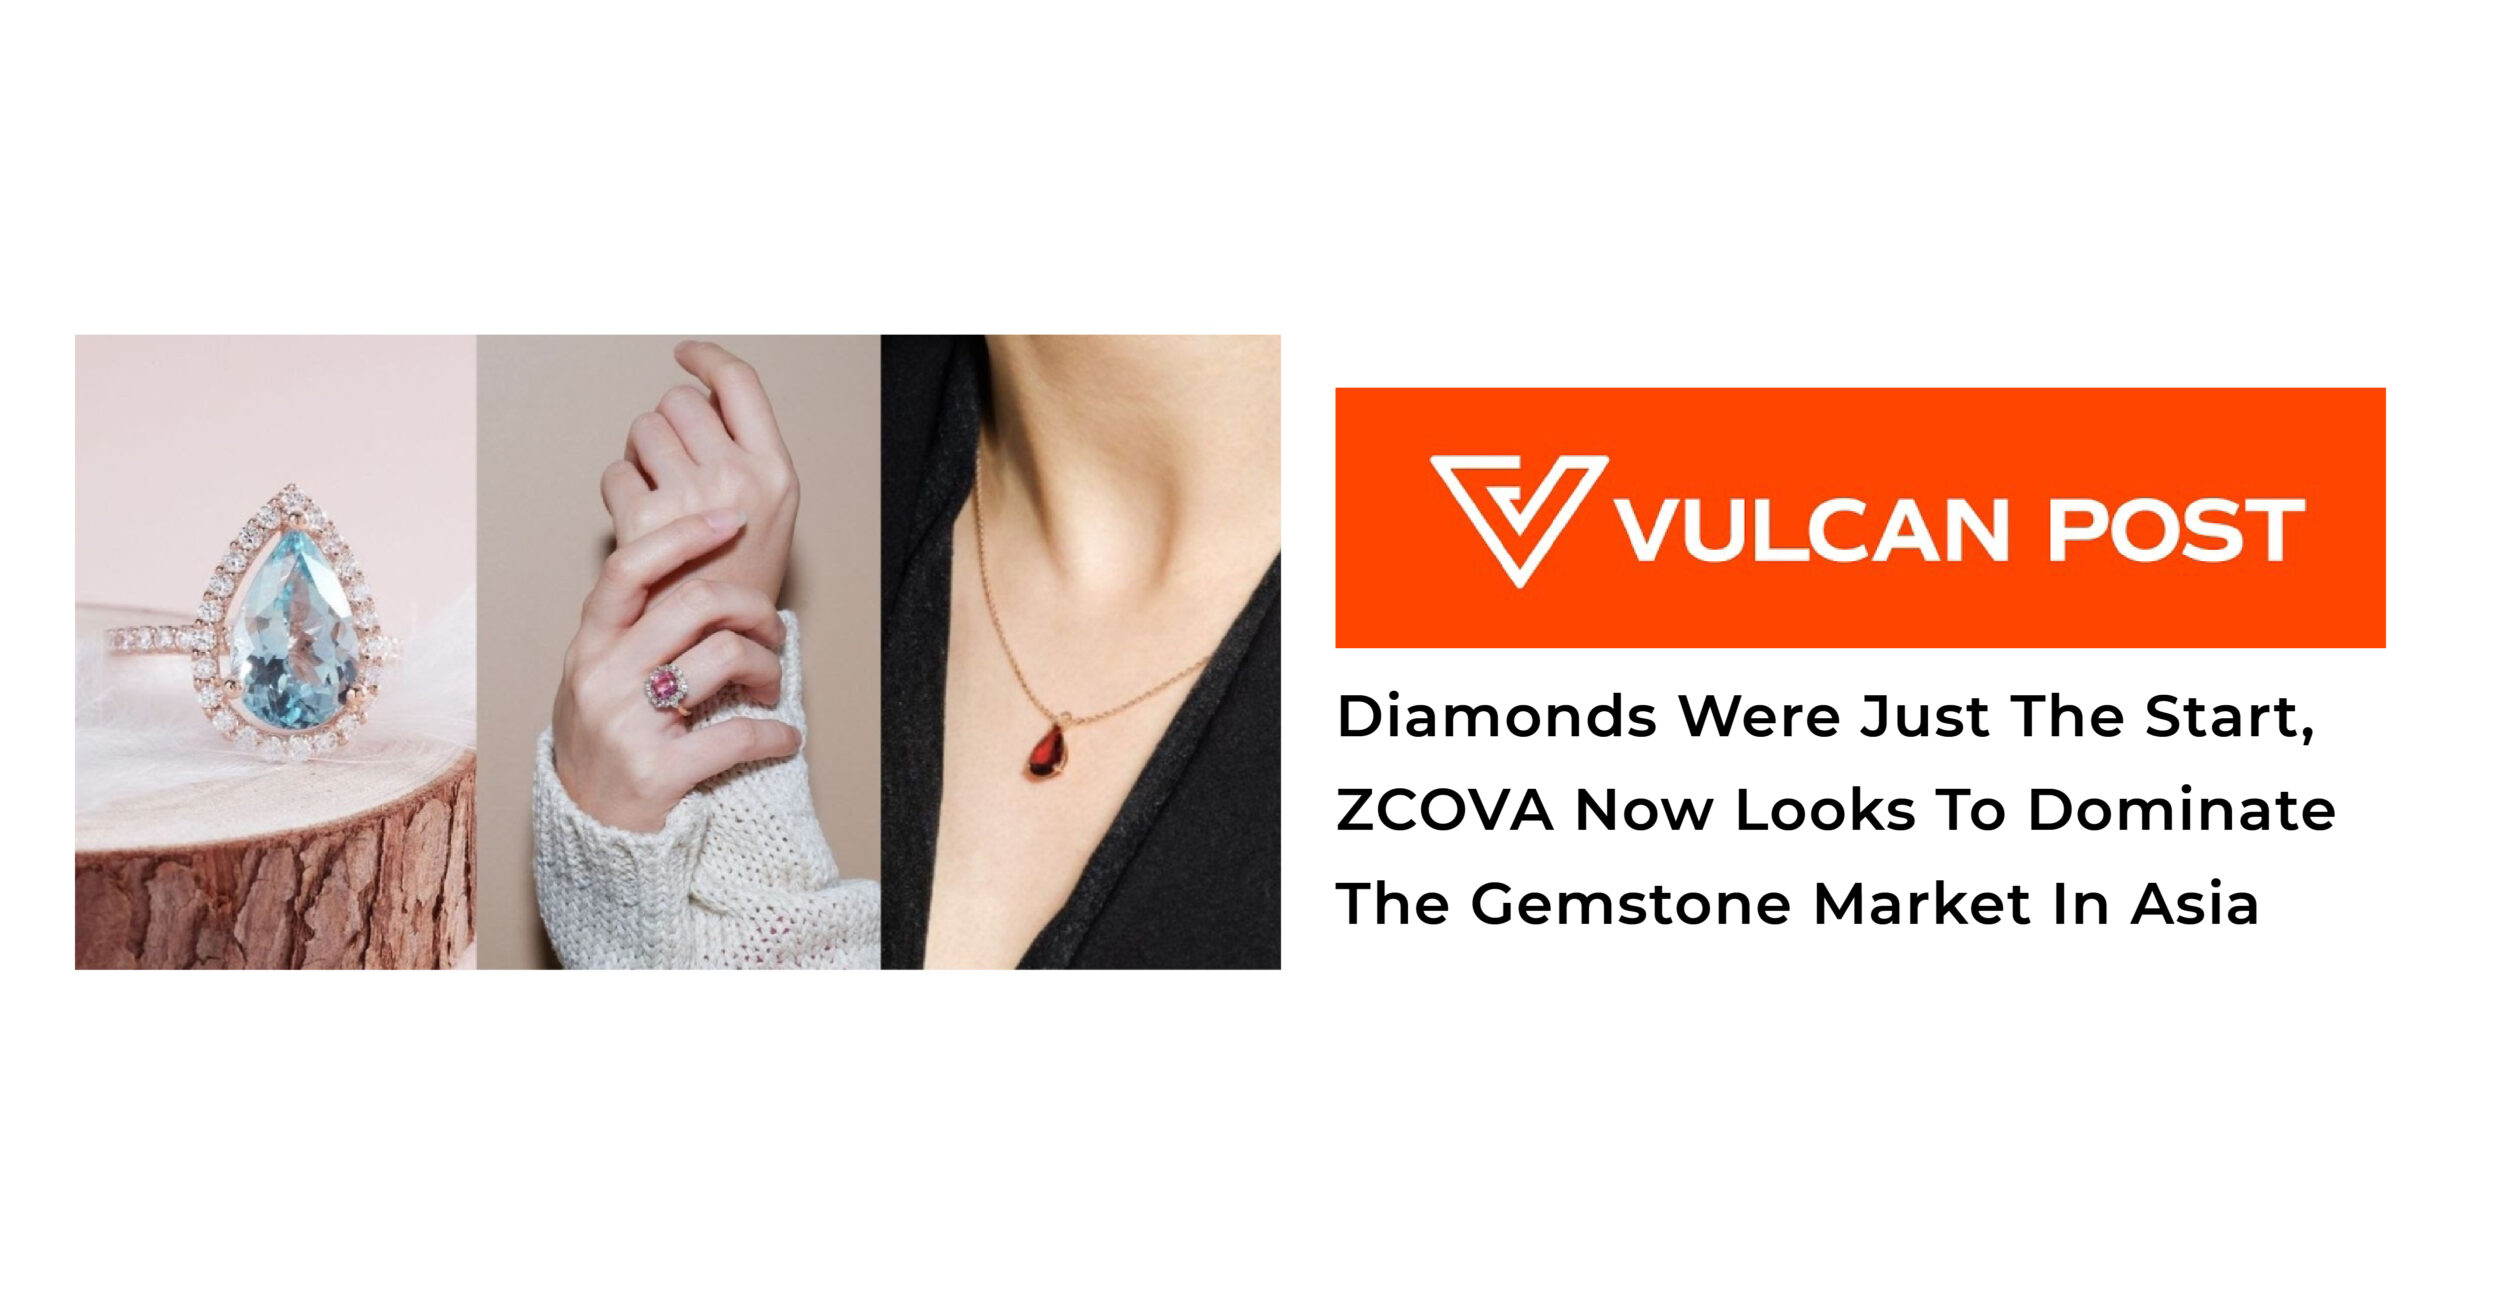 Vulcan Post X ZCOVA Gemstone featured news